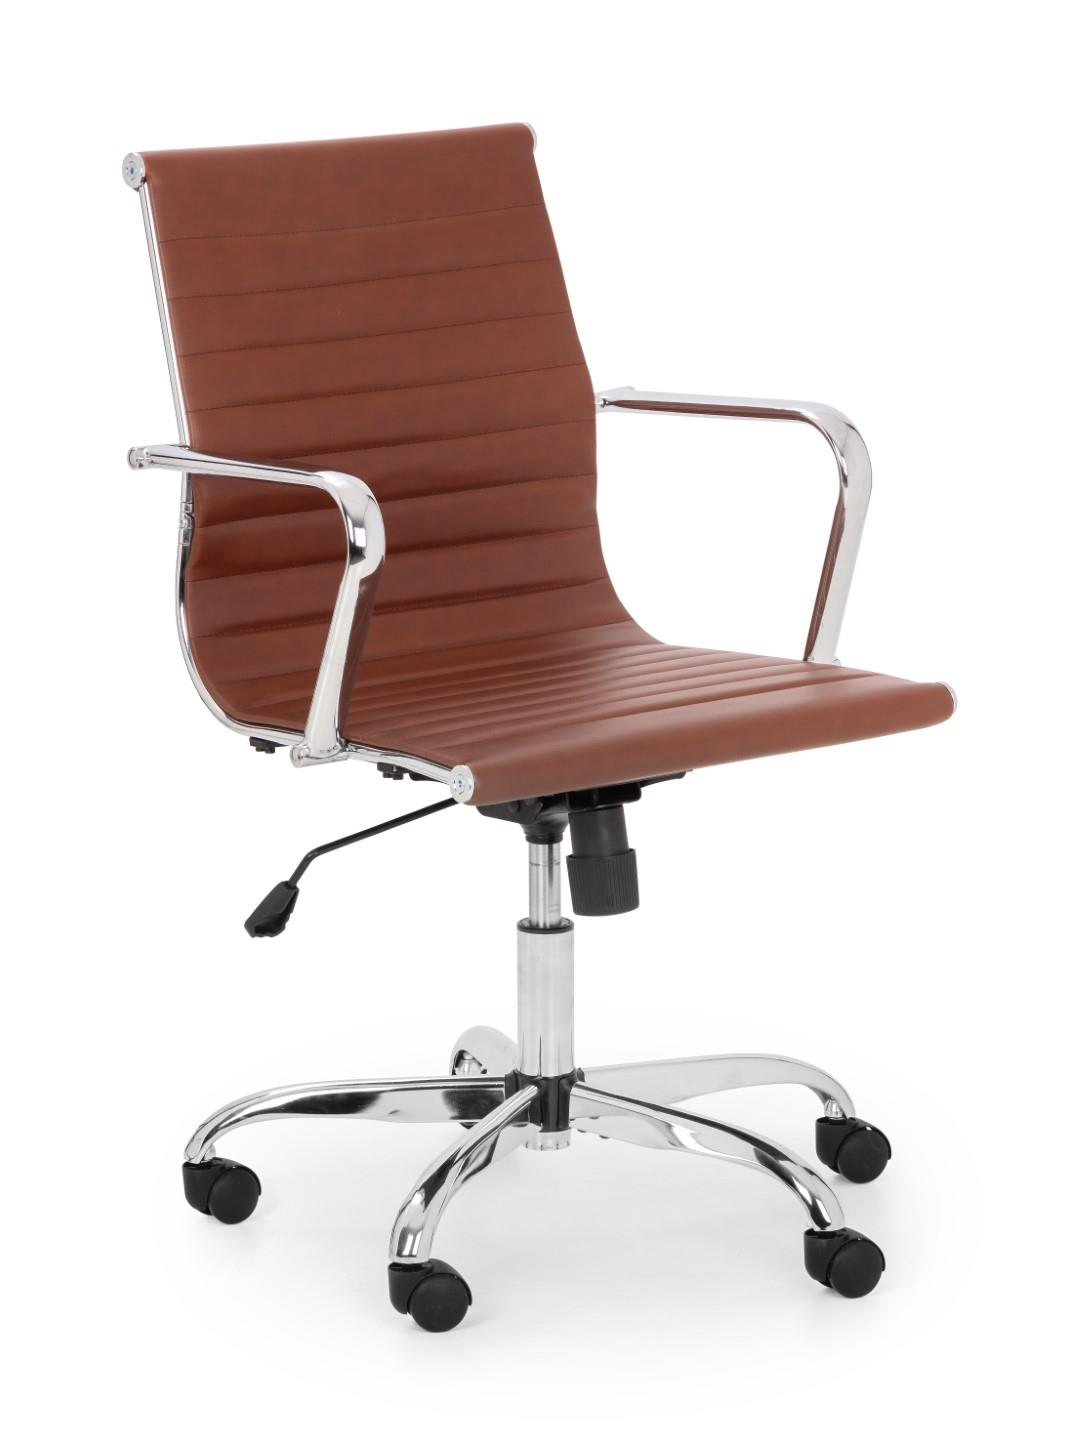 Julian Bowen Gio Office Desk Computer Chair Brown Leather Chrome Adjustable